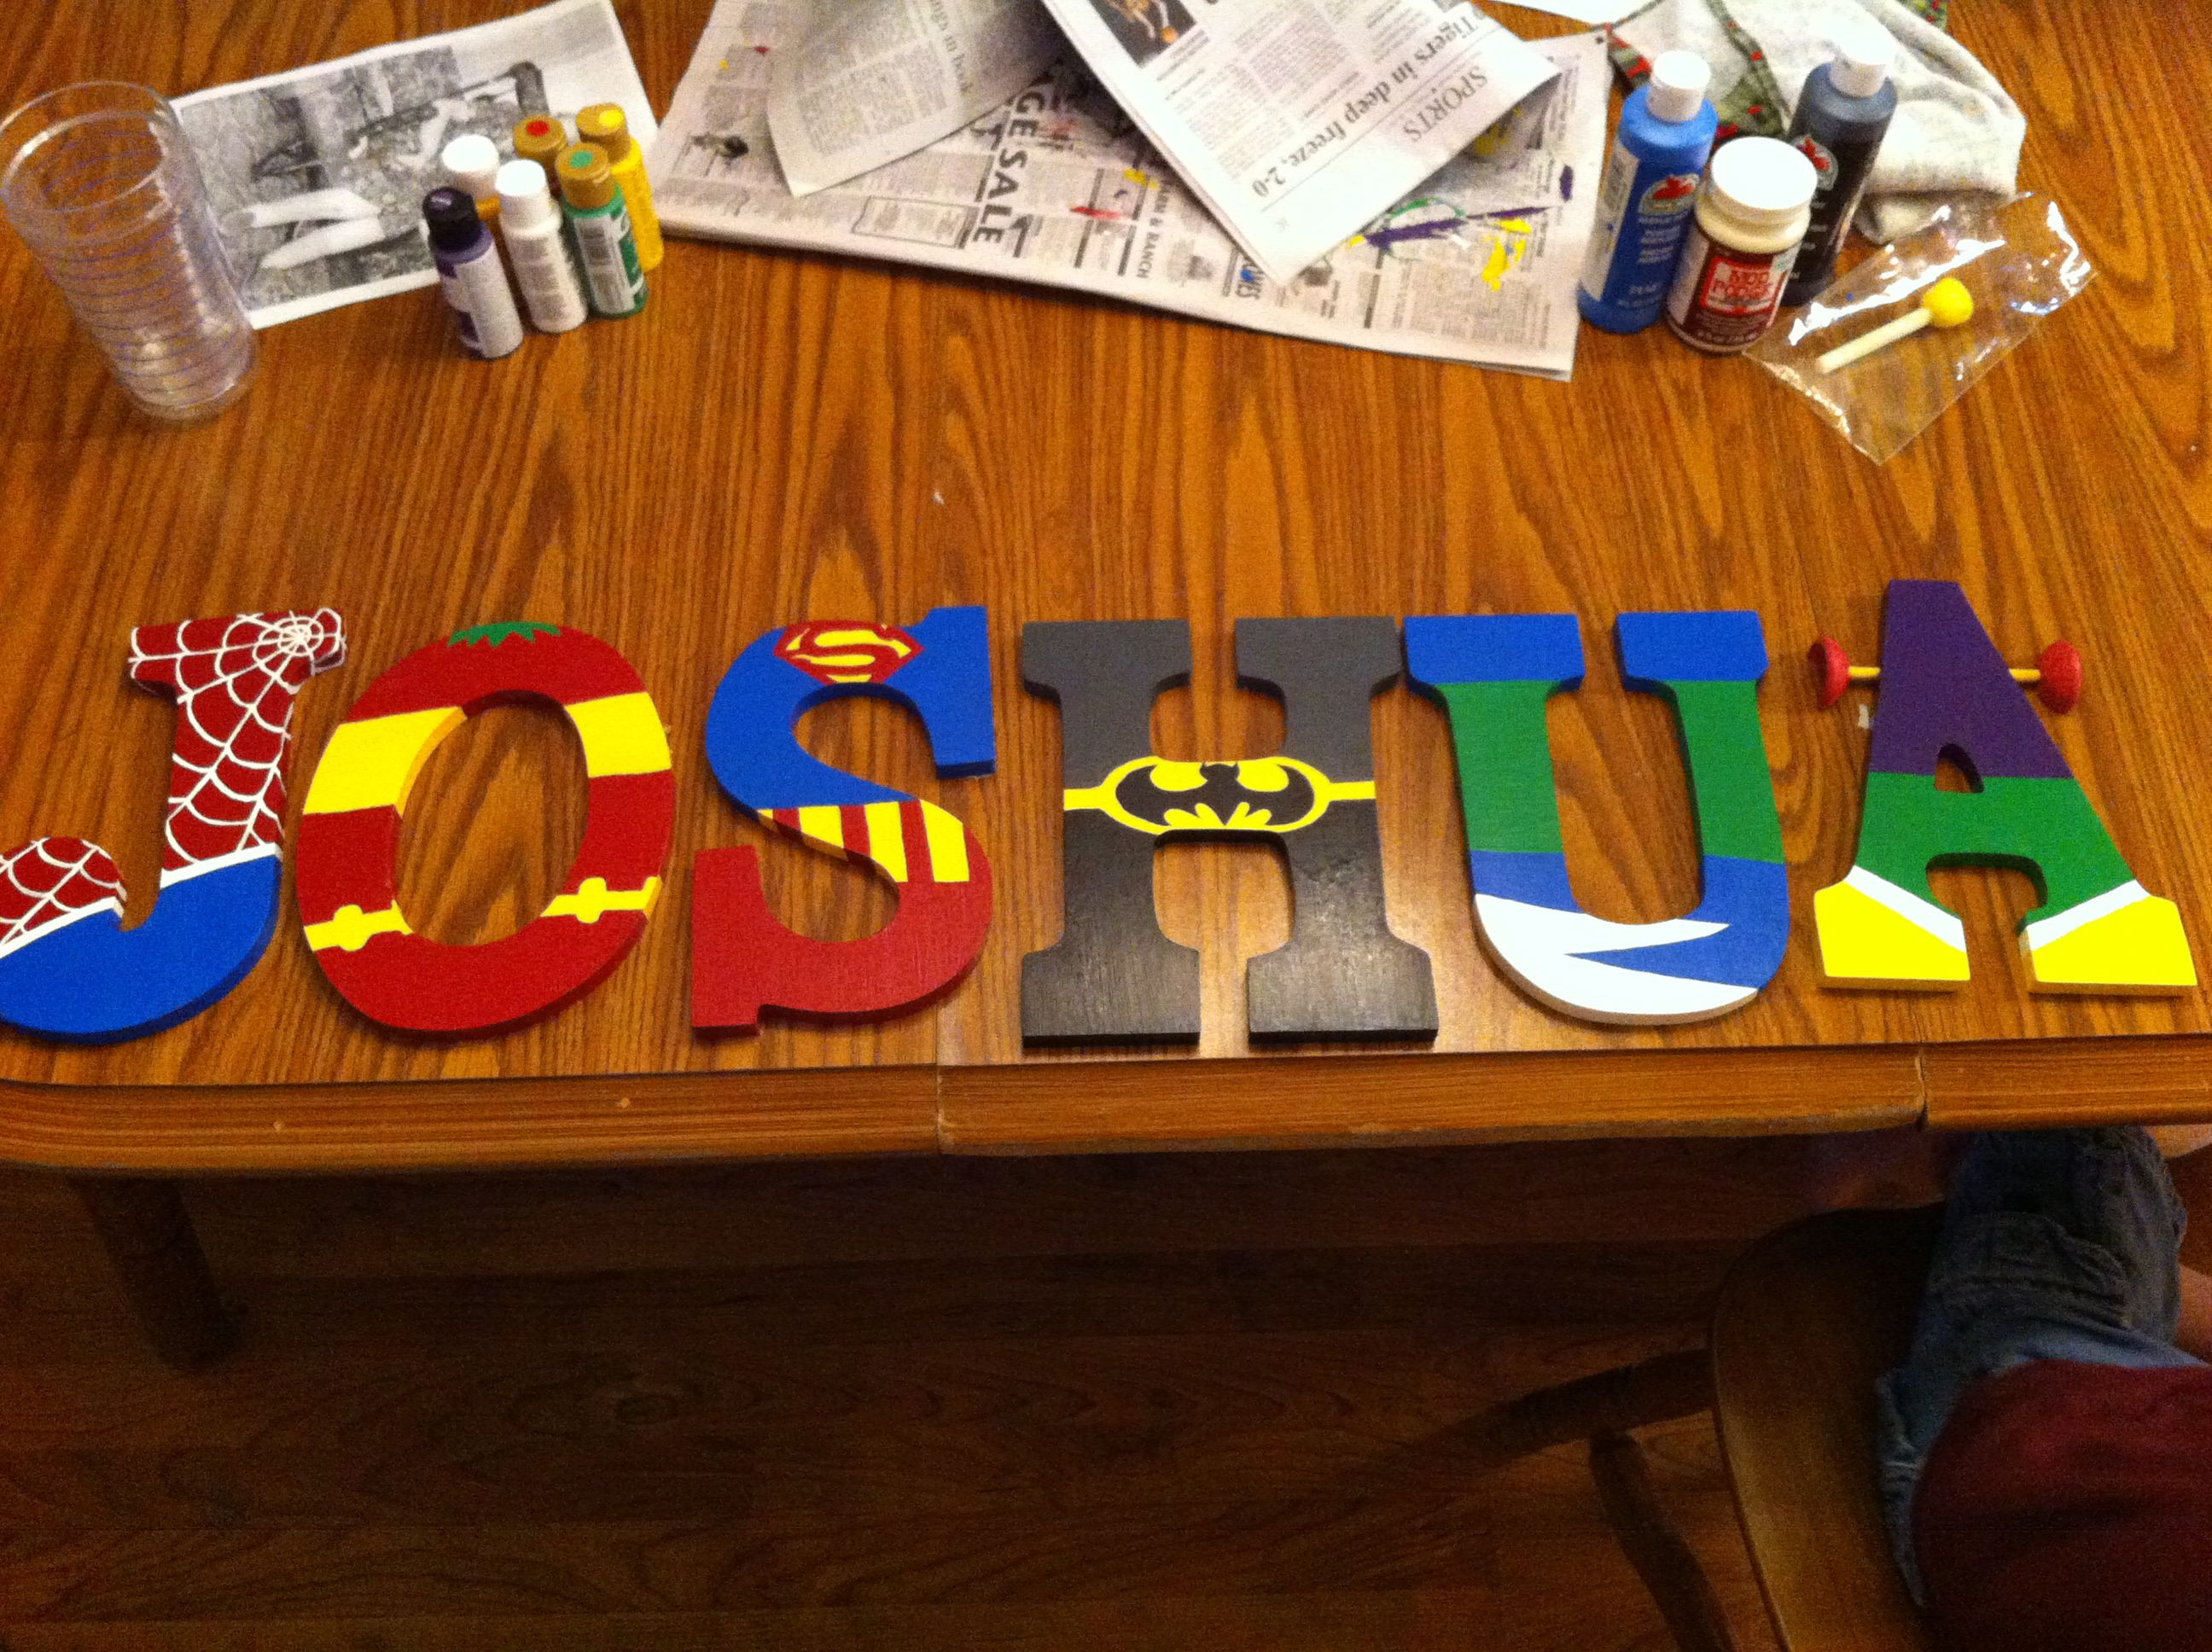 Decor for my son's new superhero room. I found inspiration from some clip art I found online. Then I drew the designs on each letter and painted, then finished each letter with mod podge. Only took about a day to finish with a little help from some of my awesome family!